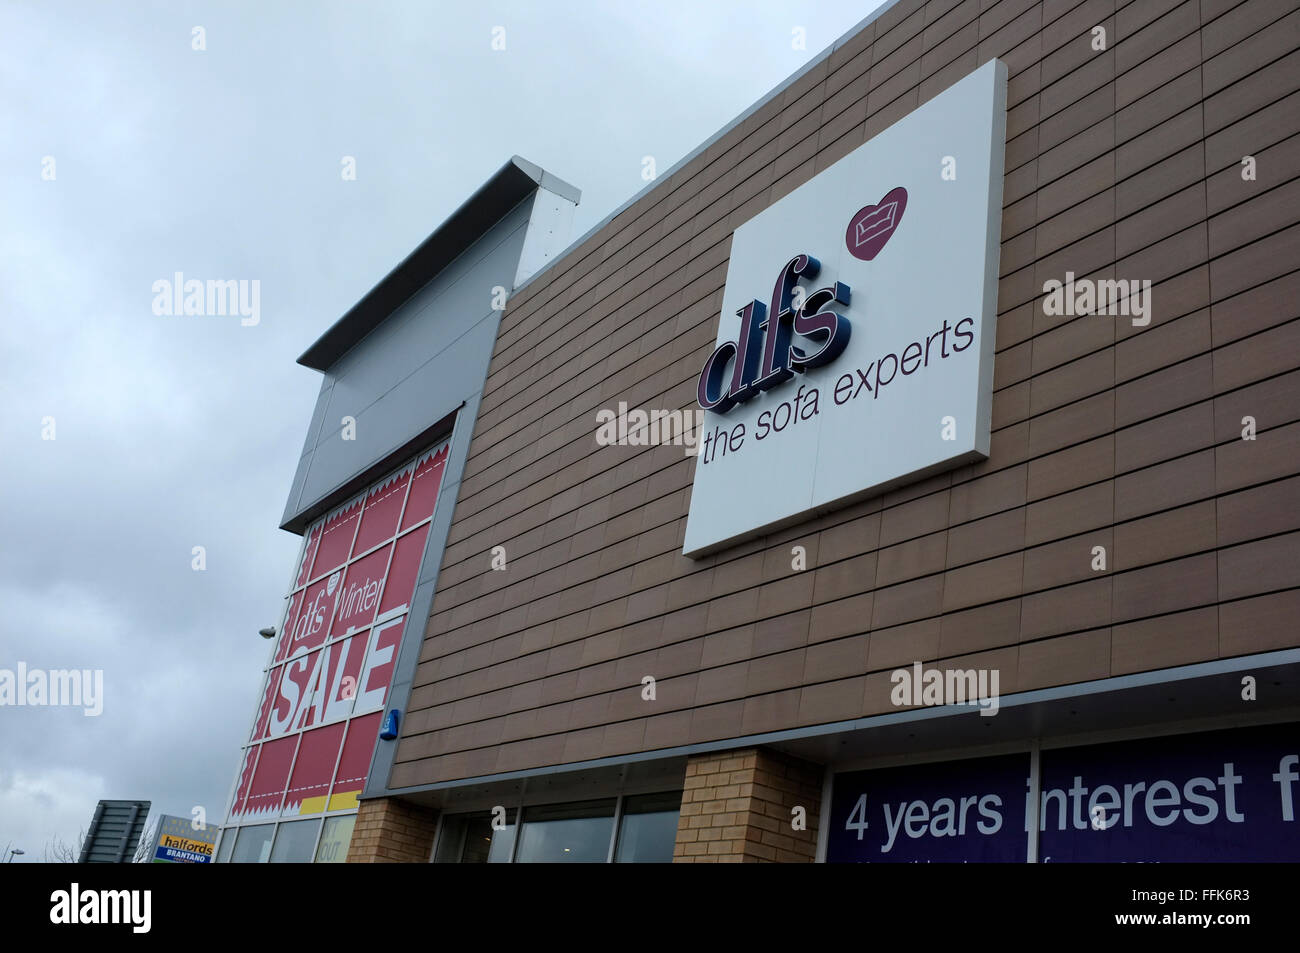 Dfs The Sofa Experts Store In Westwood Cross Thanet West Kent Uk Stock Photo Alamy